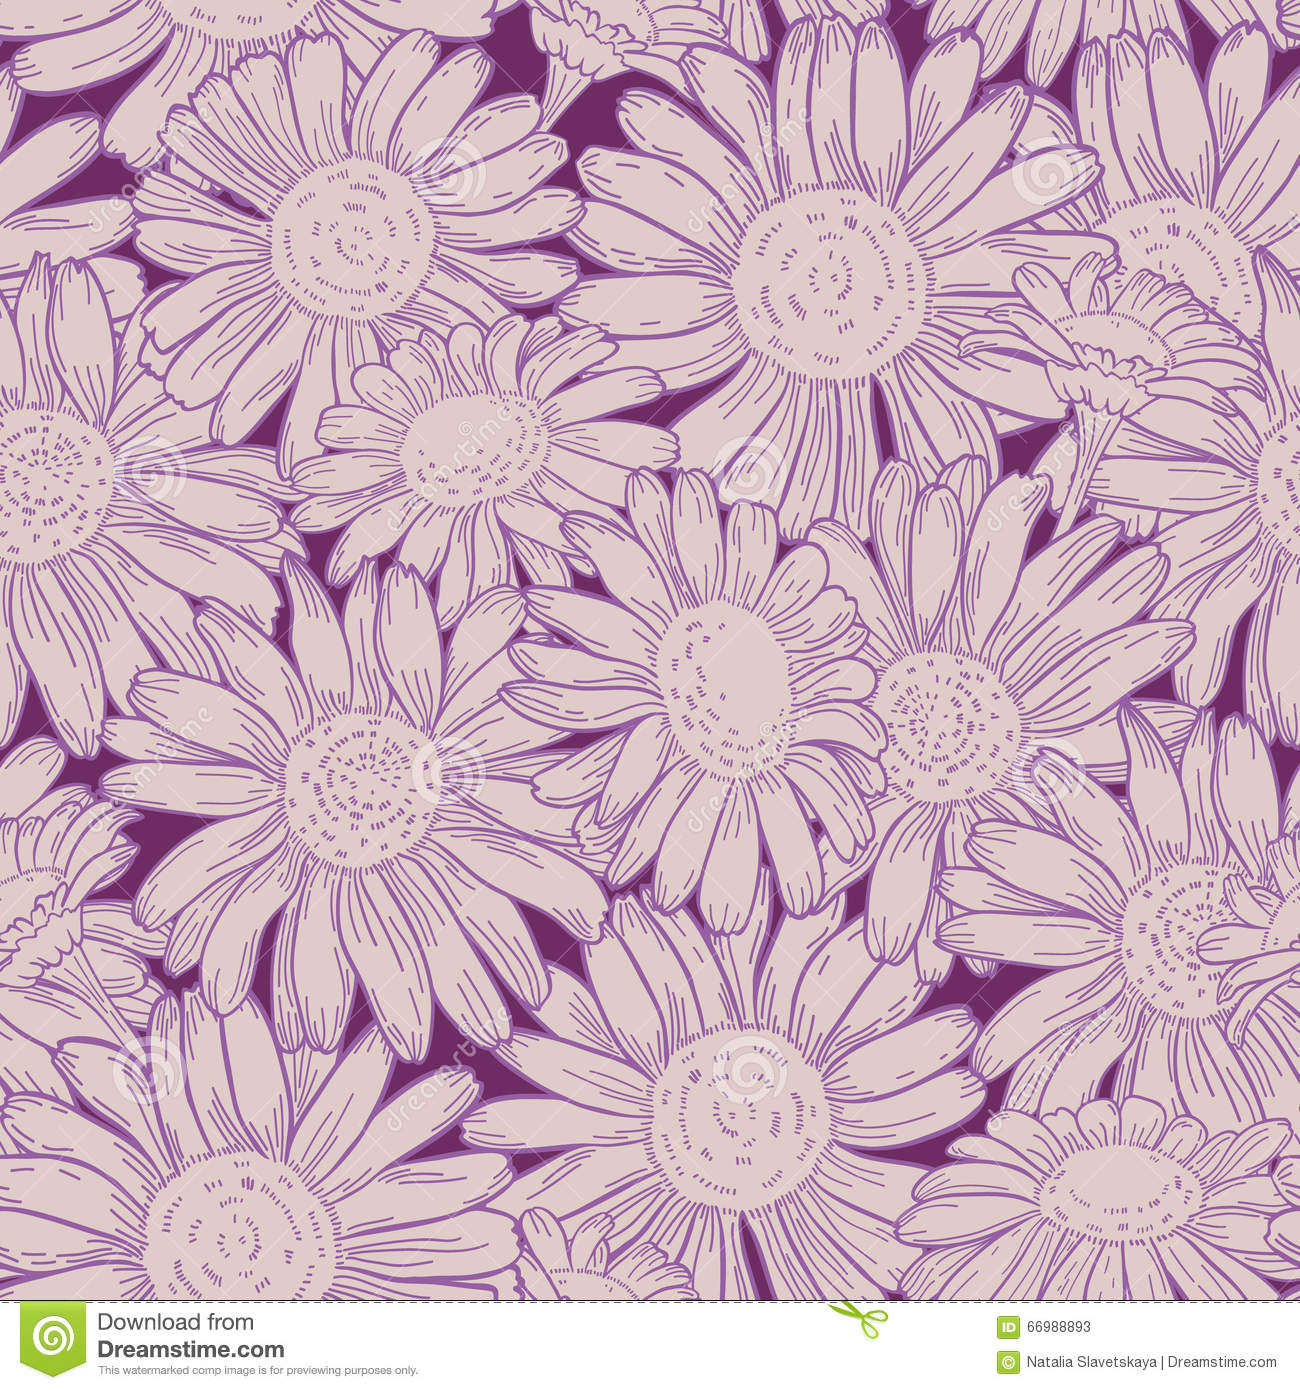 Daisy pattern wallpaper - photo#19